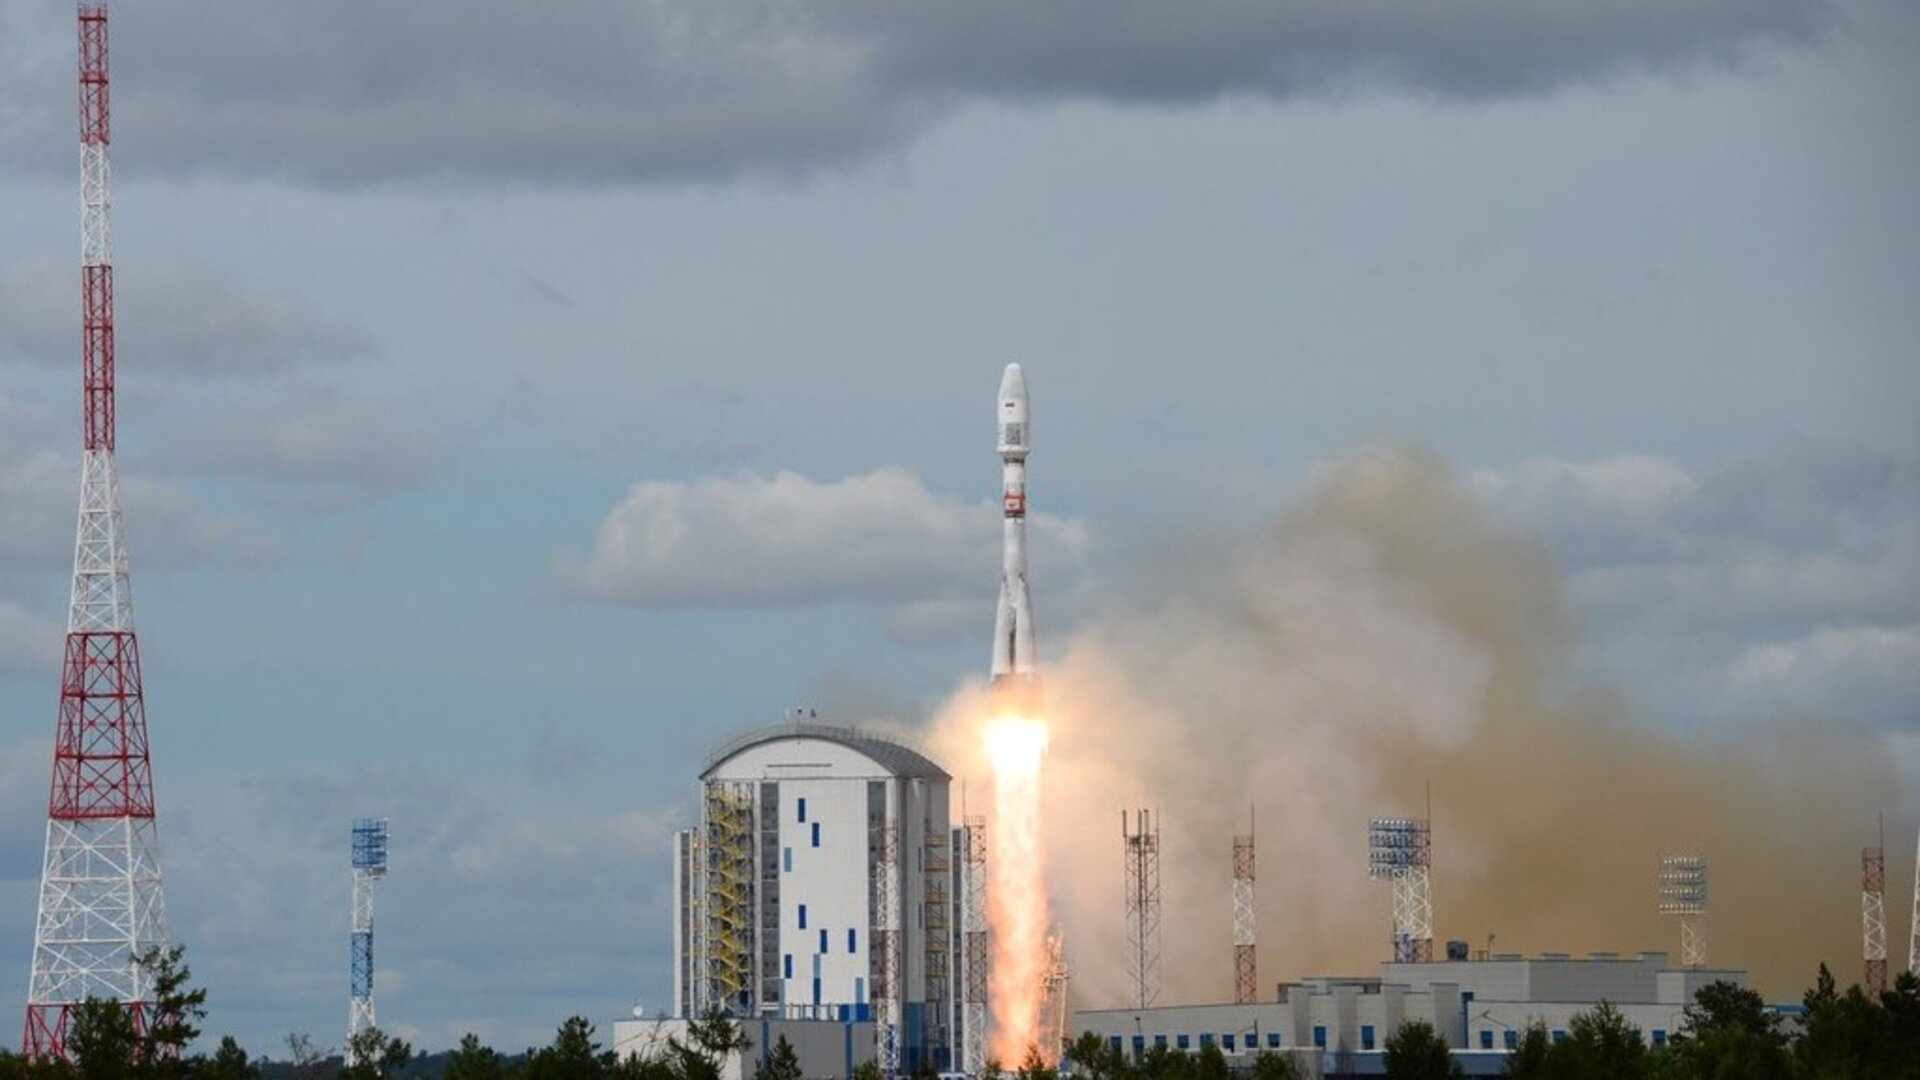 The Pioneer satellites were launched on board a Soyuz